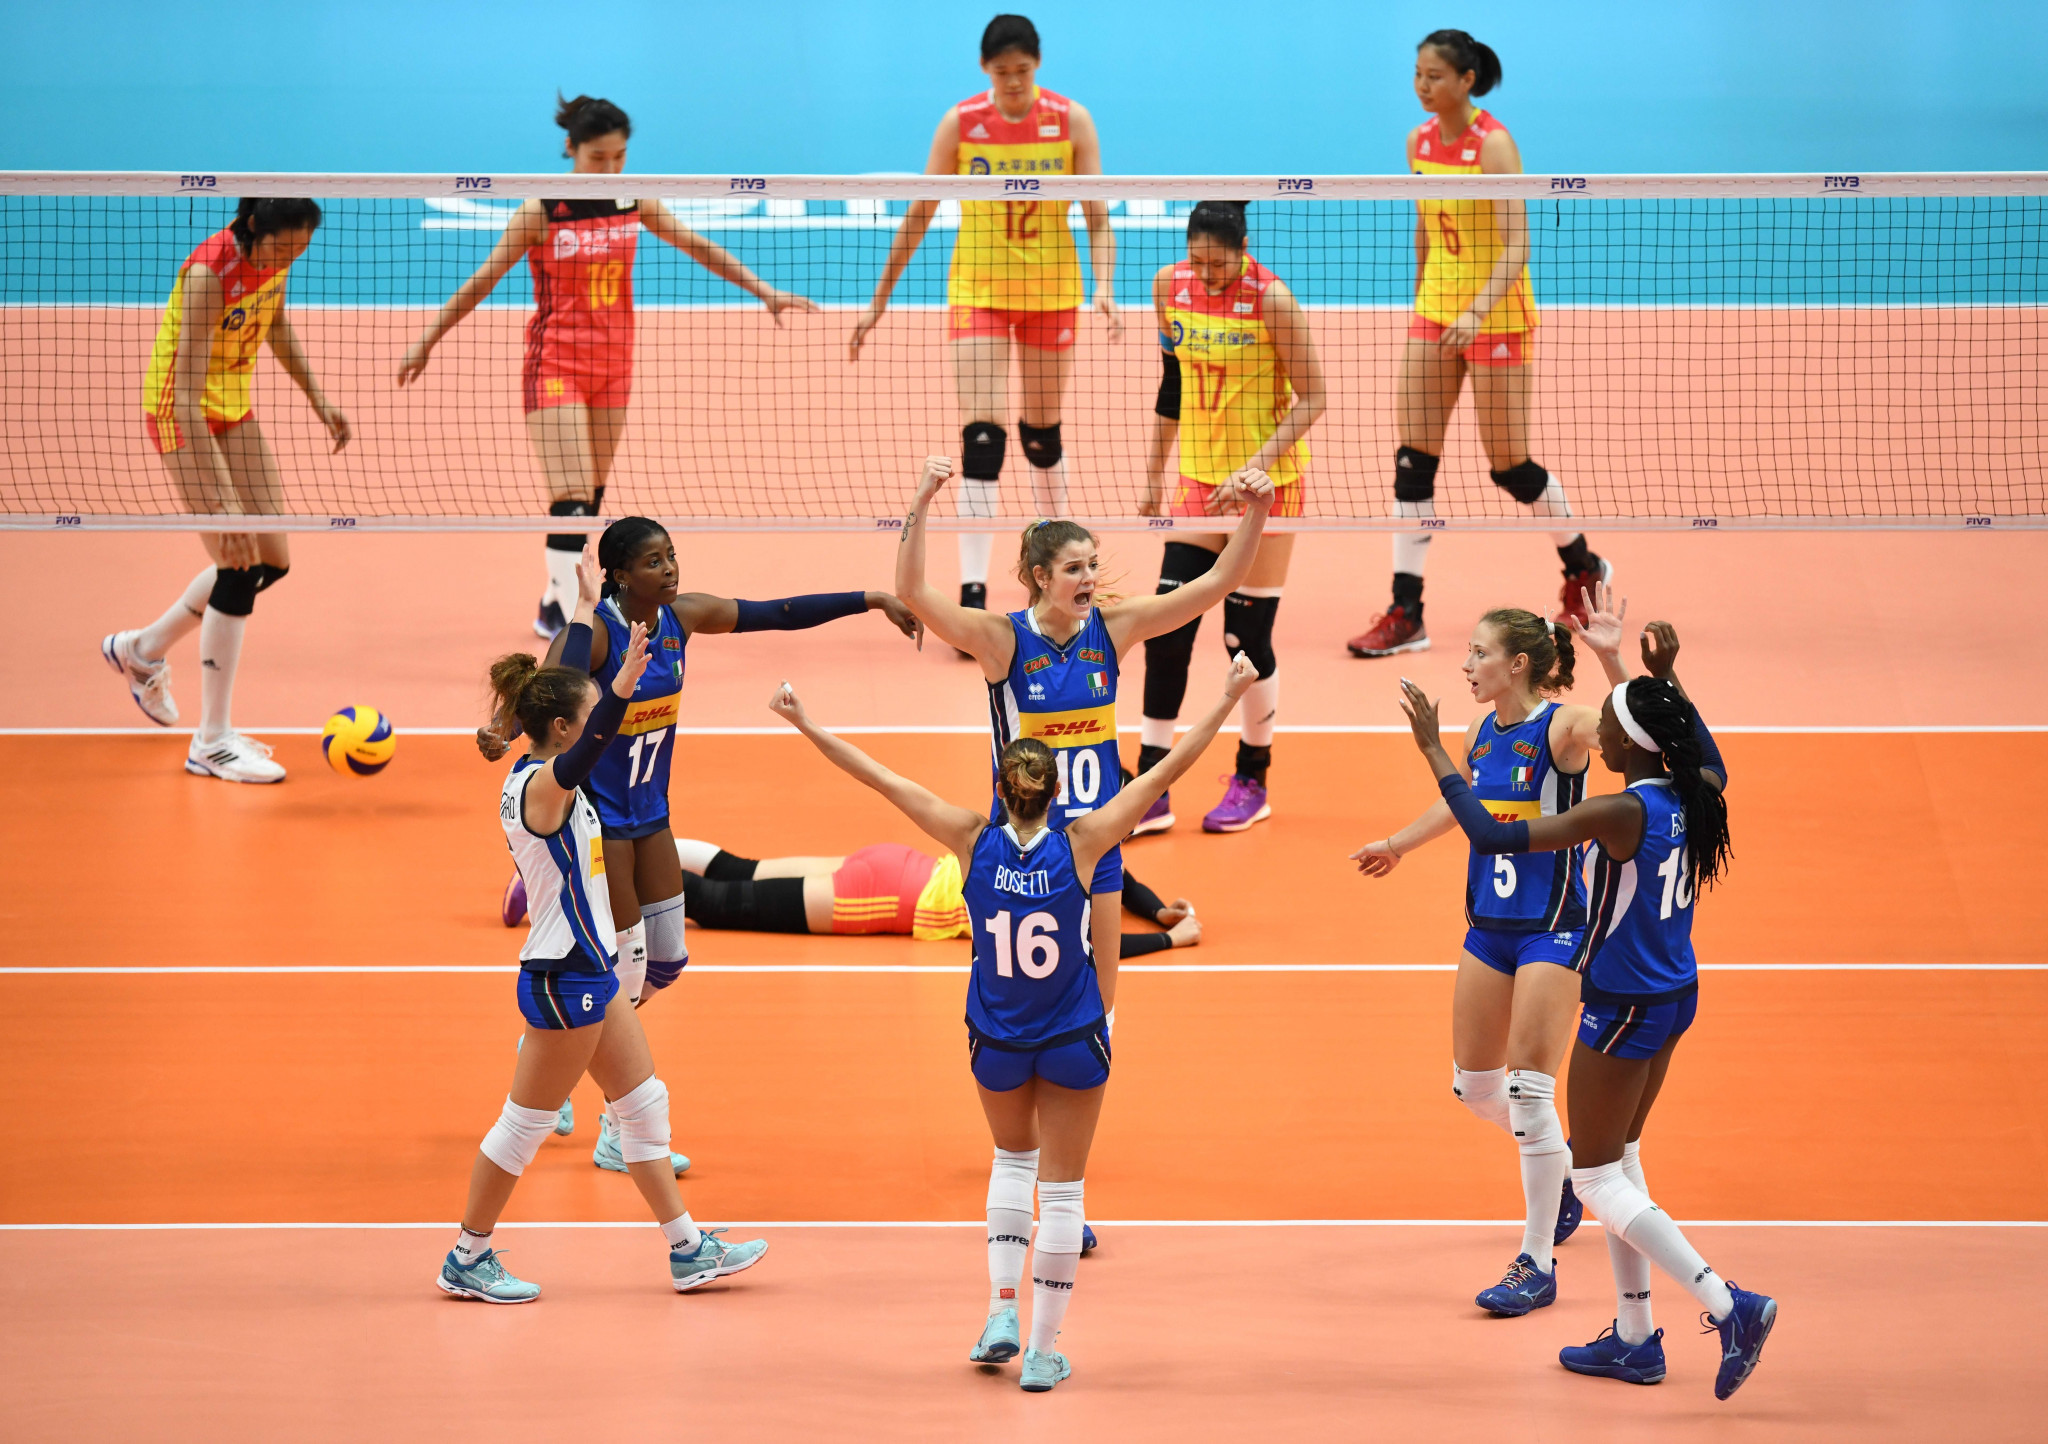 Italy celebrate winning a point against Olympic champions China ©Getty Images